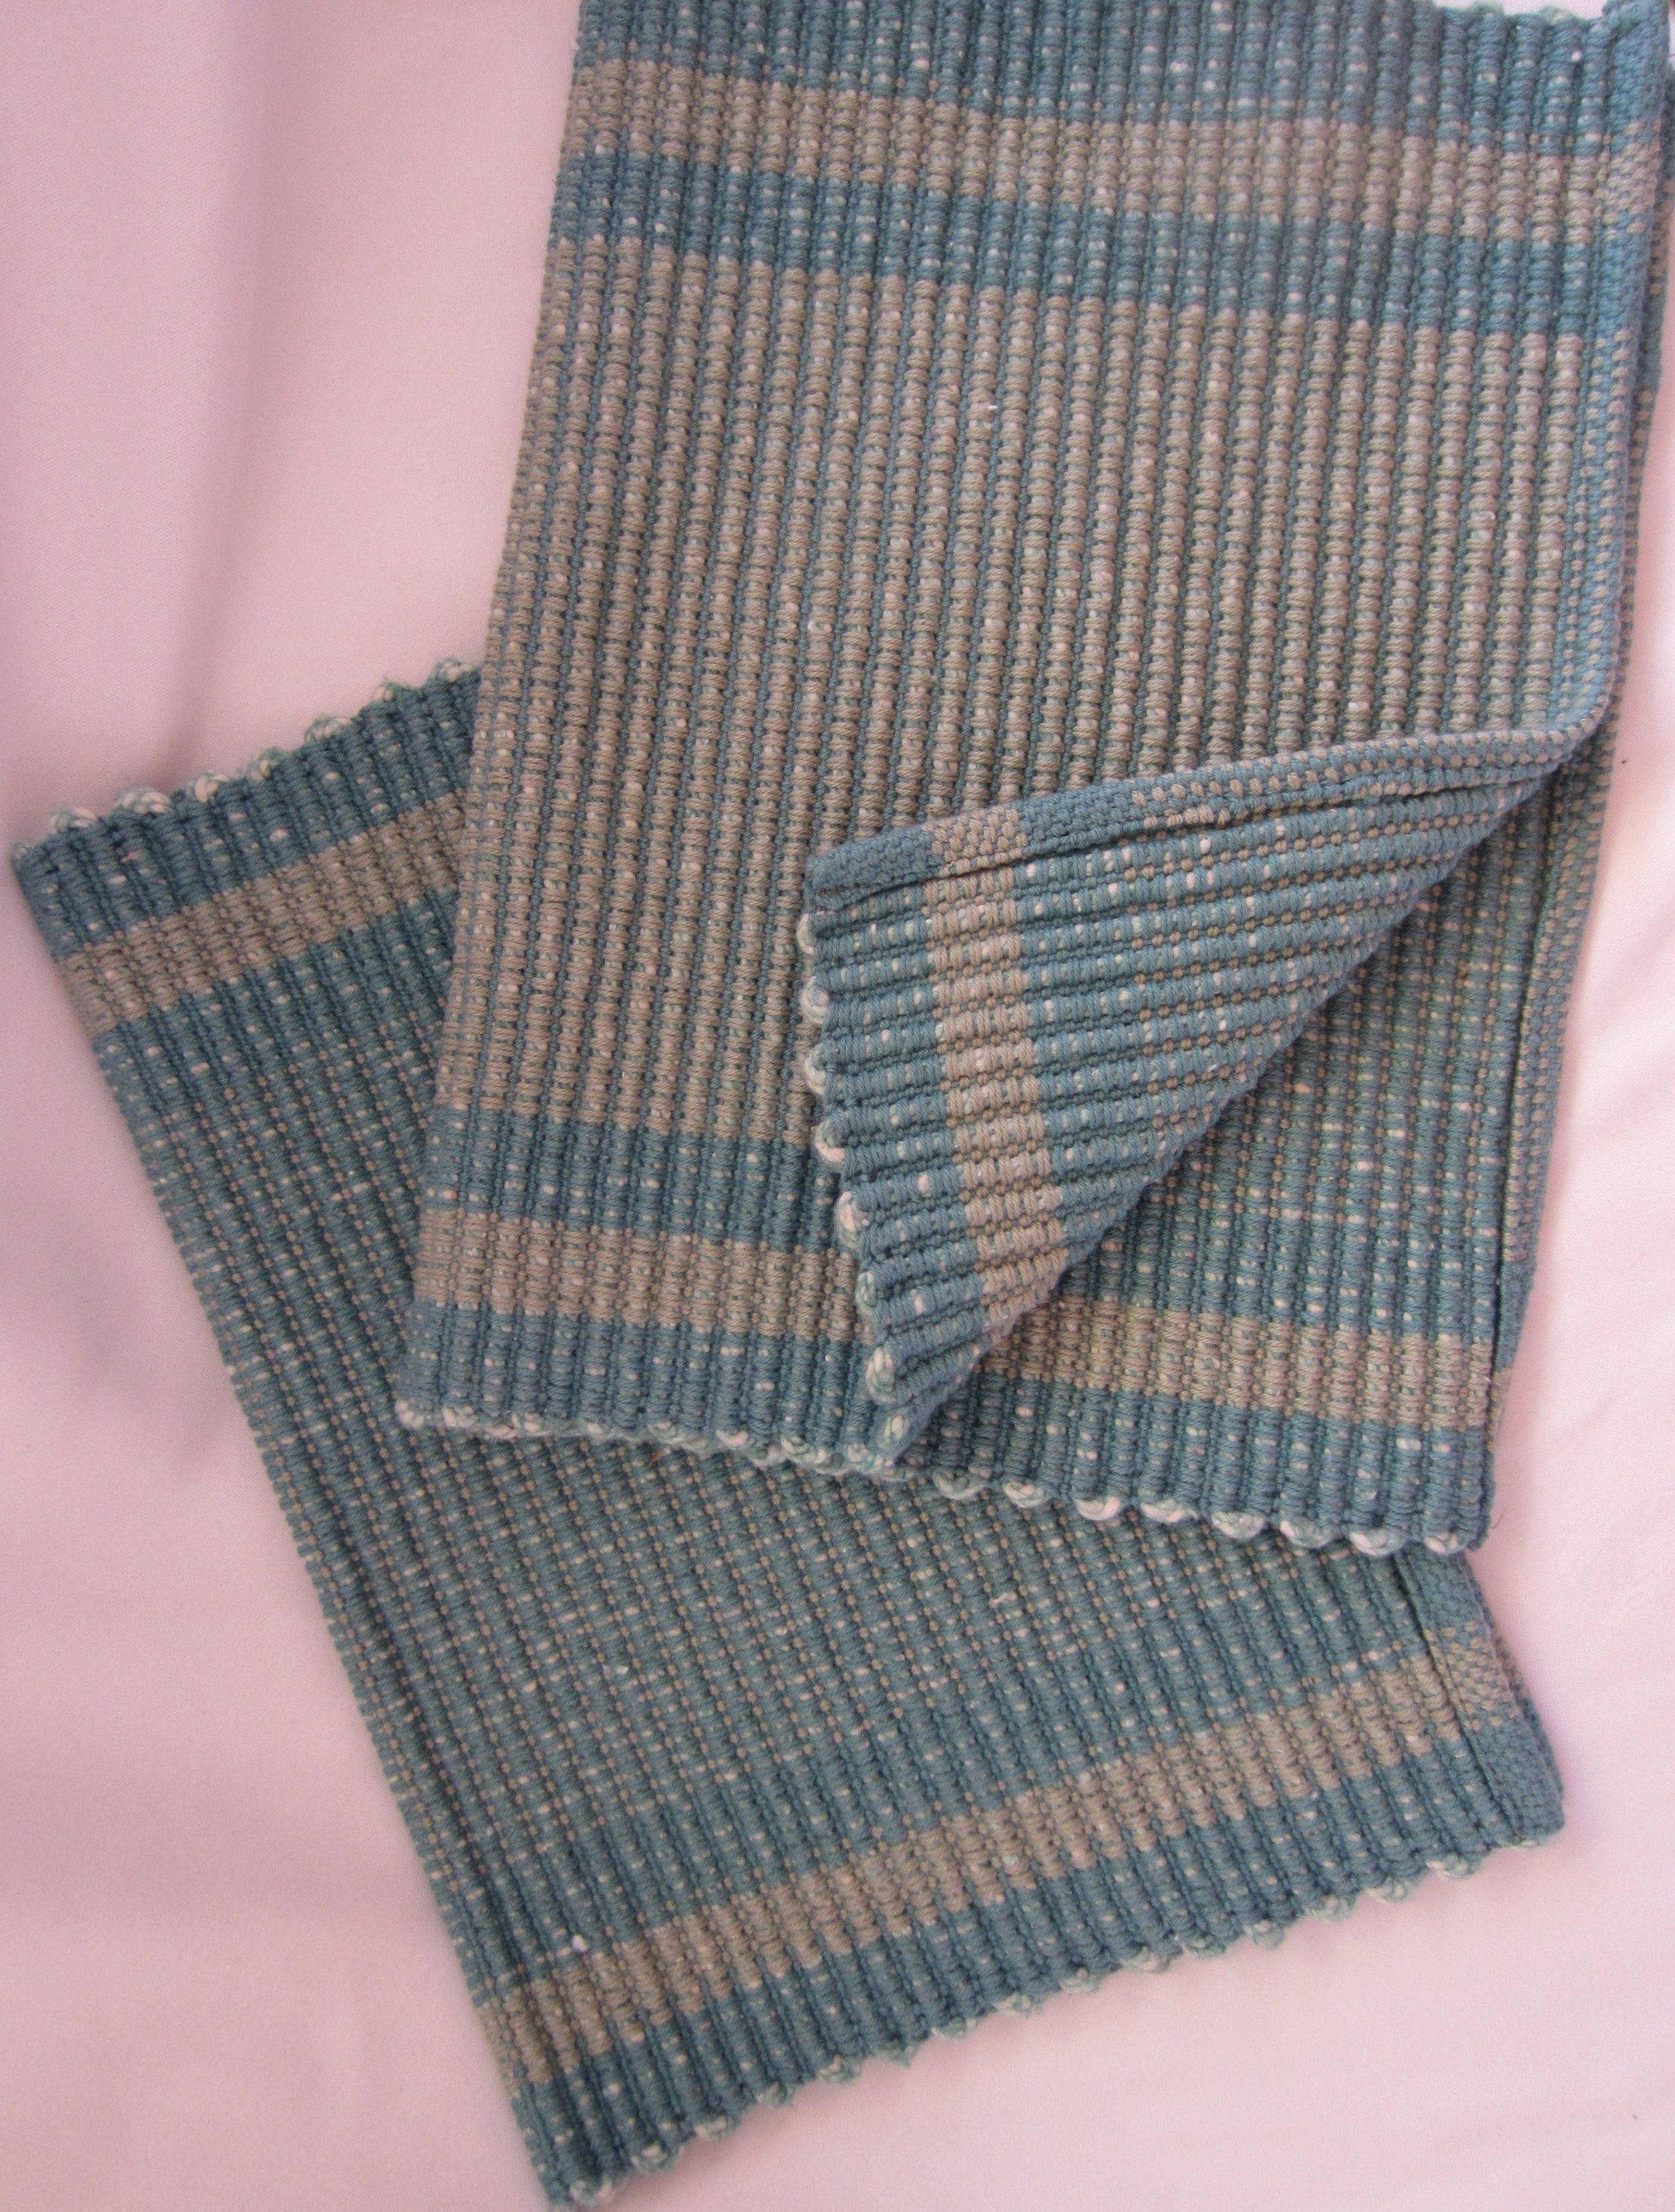 Weaving Placemats On My Rigid Heddle Loom Rigid Heddle Weaving Patterns Weaving Loom Projects Rigid Heddle Weaving